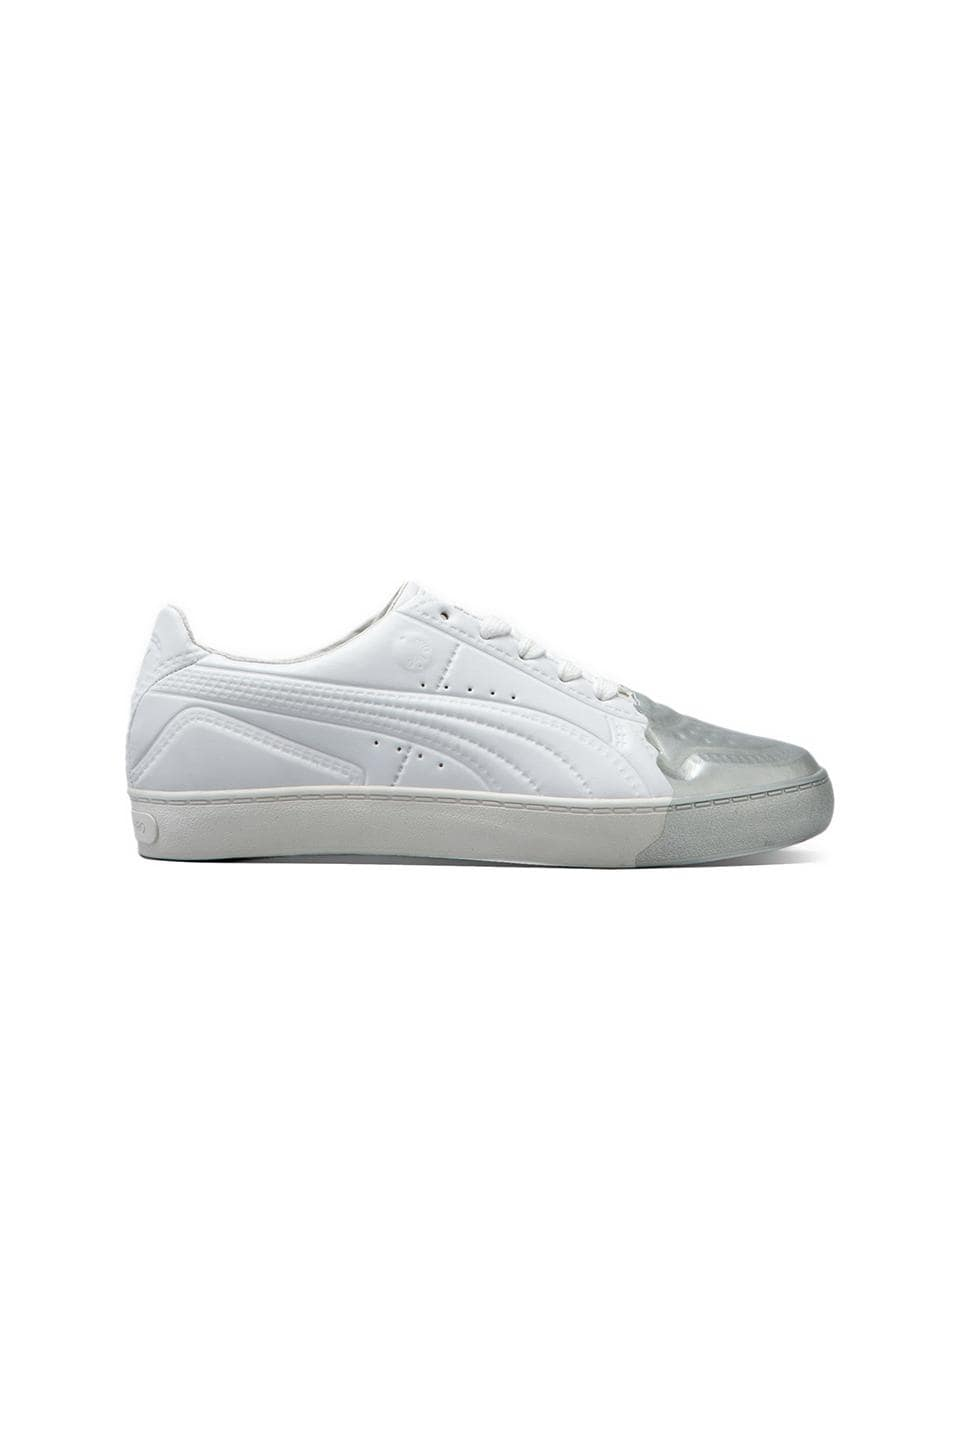 Puma by Mihara MY-70 in White/Puma Silver